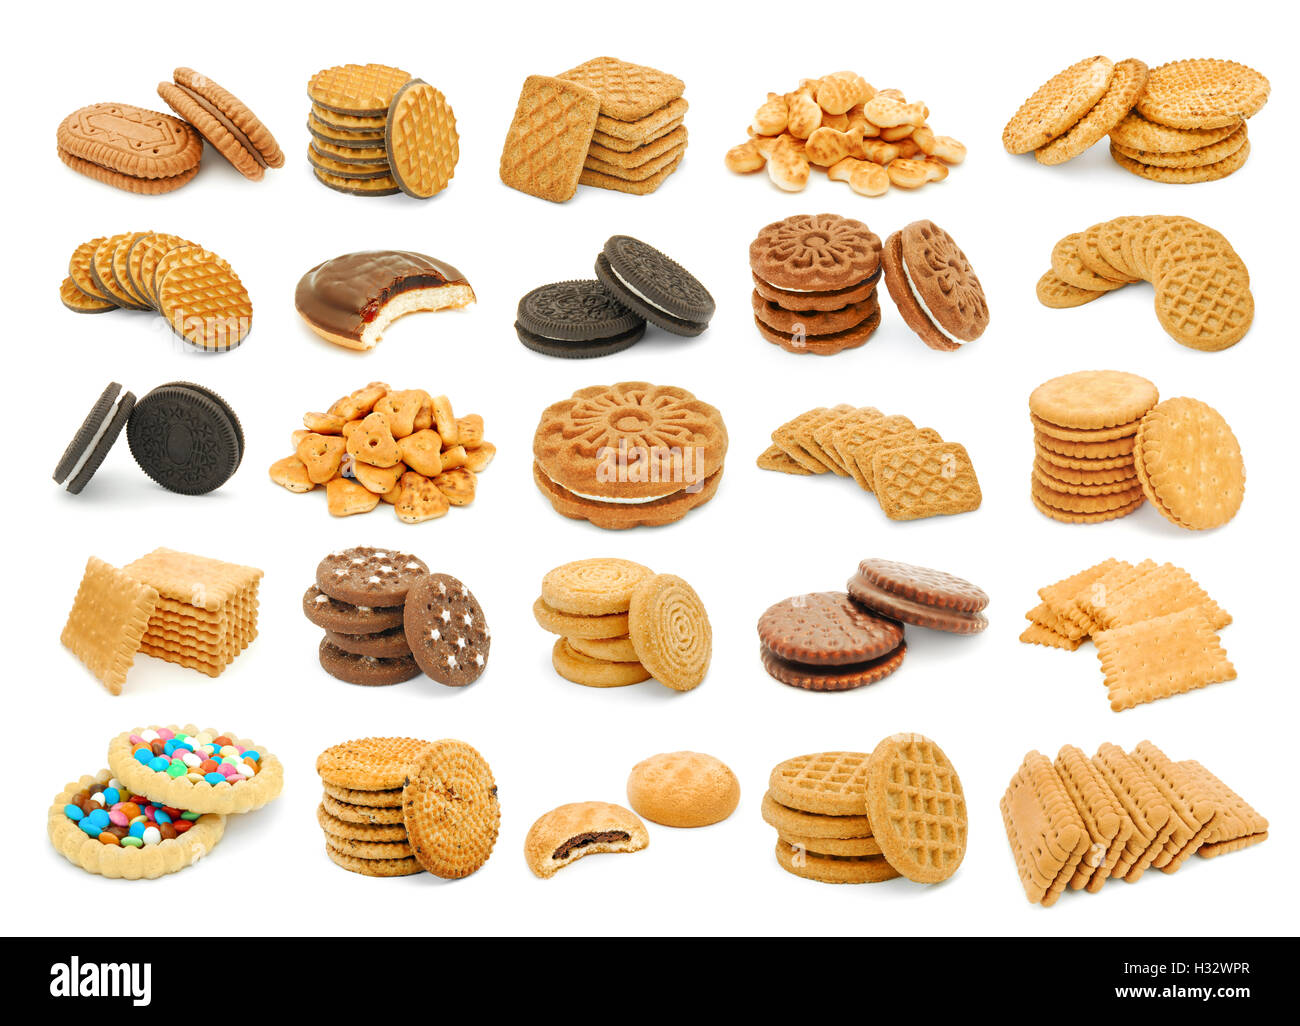 biscuits mix collage variation - Stock Image